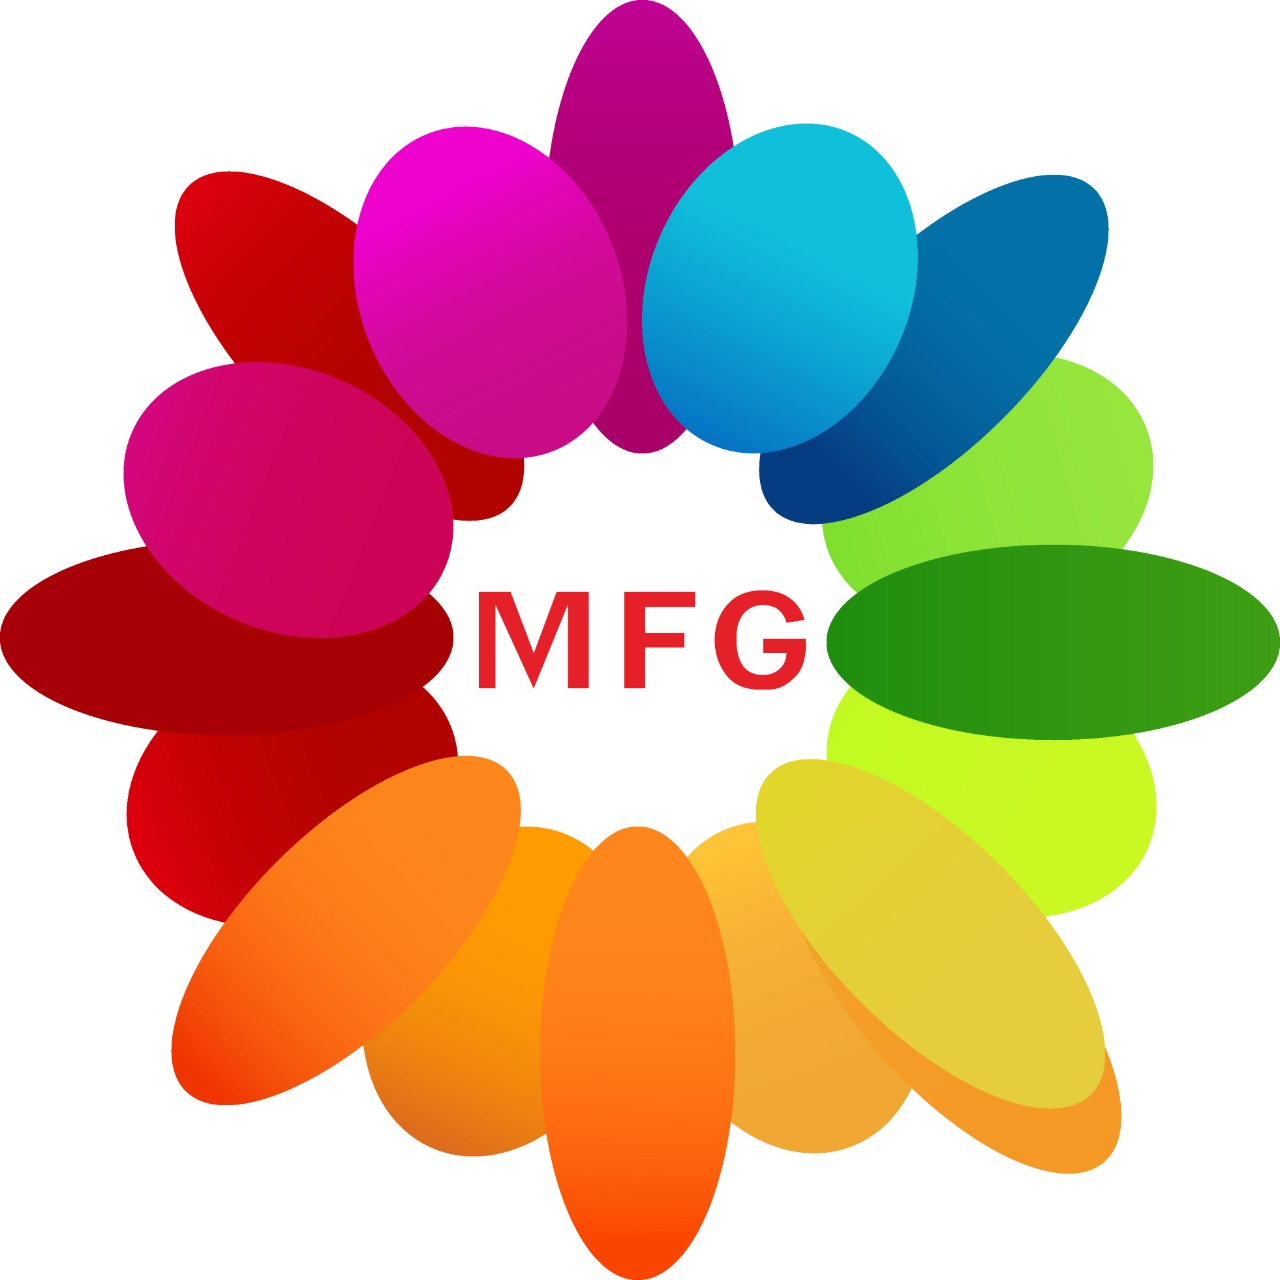 A grand bouquet of 1000 roses with 2 feet height teddy bear with 10 heart shape balloons with 1 kg chocolate truffle fresh cream cake